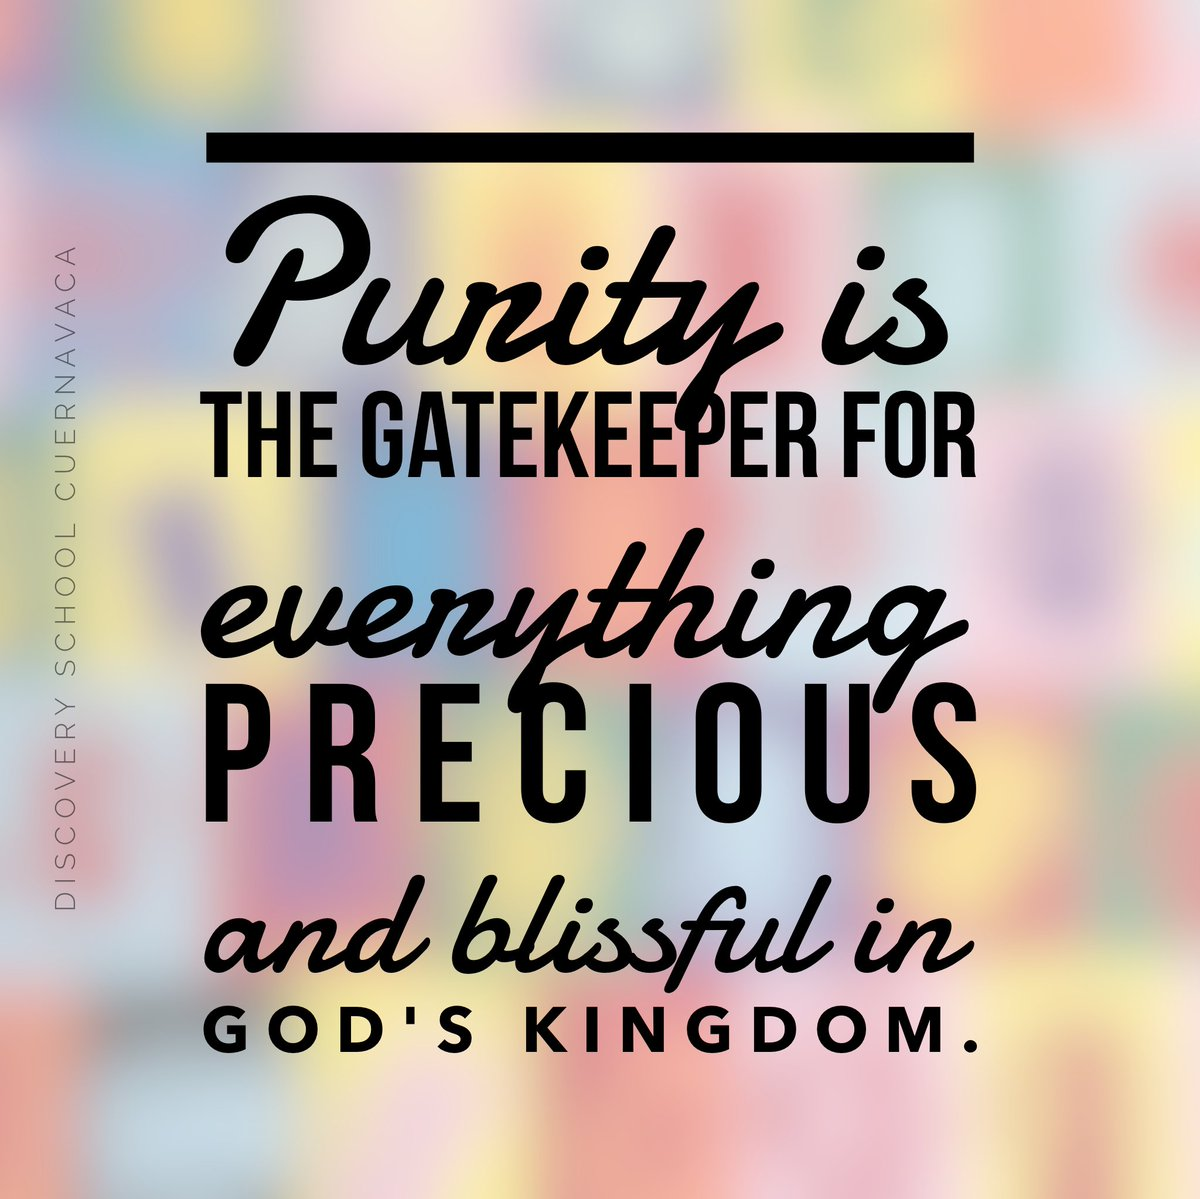 Purity is the gatekeeper for everything precious and blissful in God's kingdom.  #Pureza #Purity #ActitudDelMesDS #SerMejorPersona #WeAreLuckyPeople #EscuelasEnCuernavaca #TheBestPlaceToLearnAndGrowDS #motivation #goals #inspiration #SerPuro #Transparencia